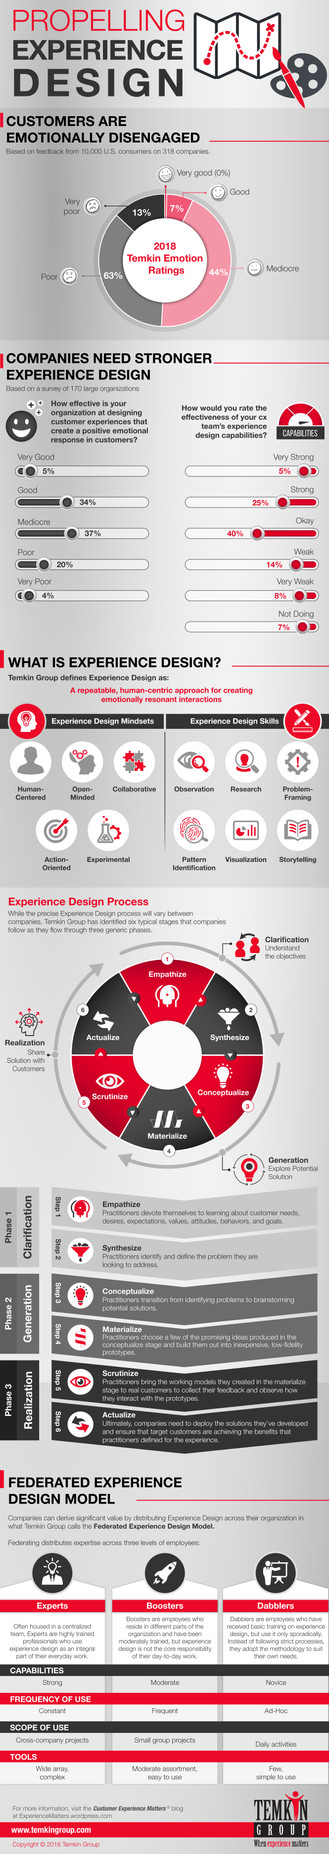 Propelling Experience Design